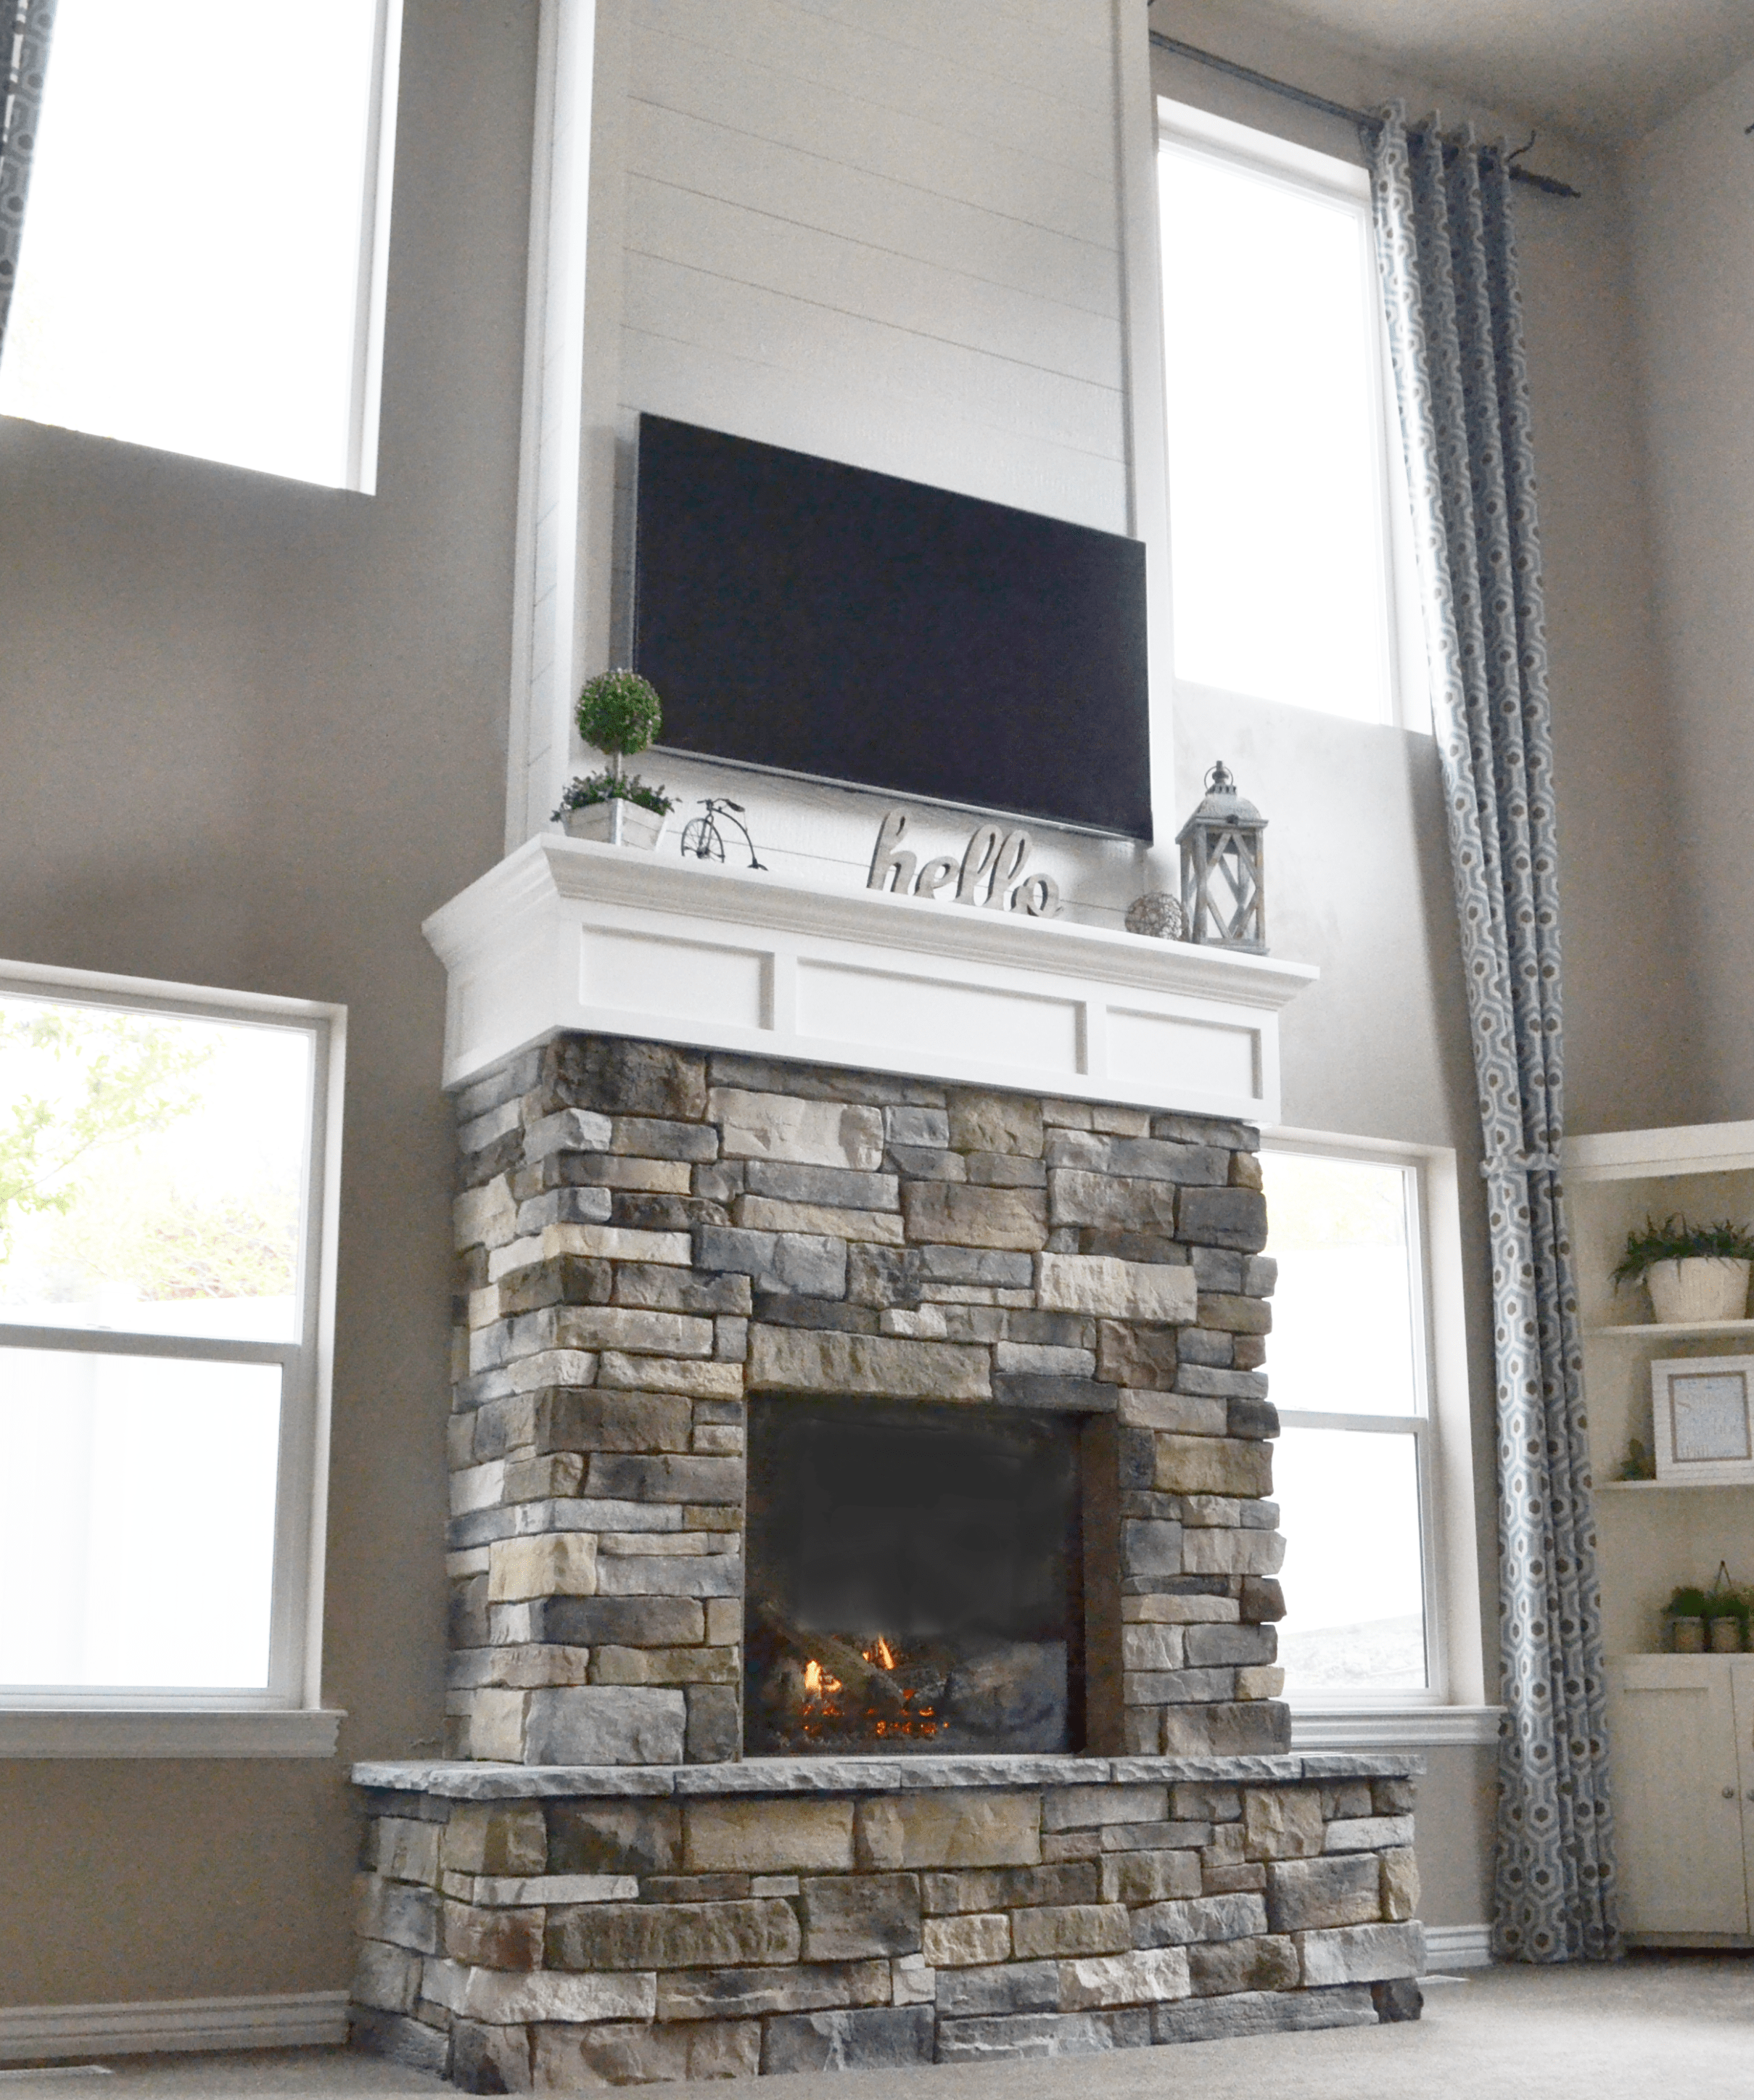 Granite Slab for Fireplace Hearth Beautiful Diy Fireplace with Stone & Shiplap